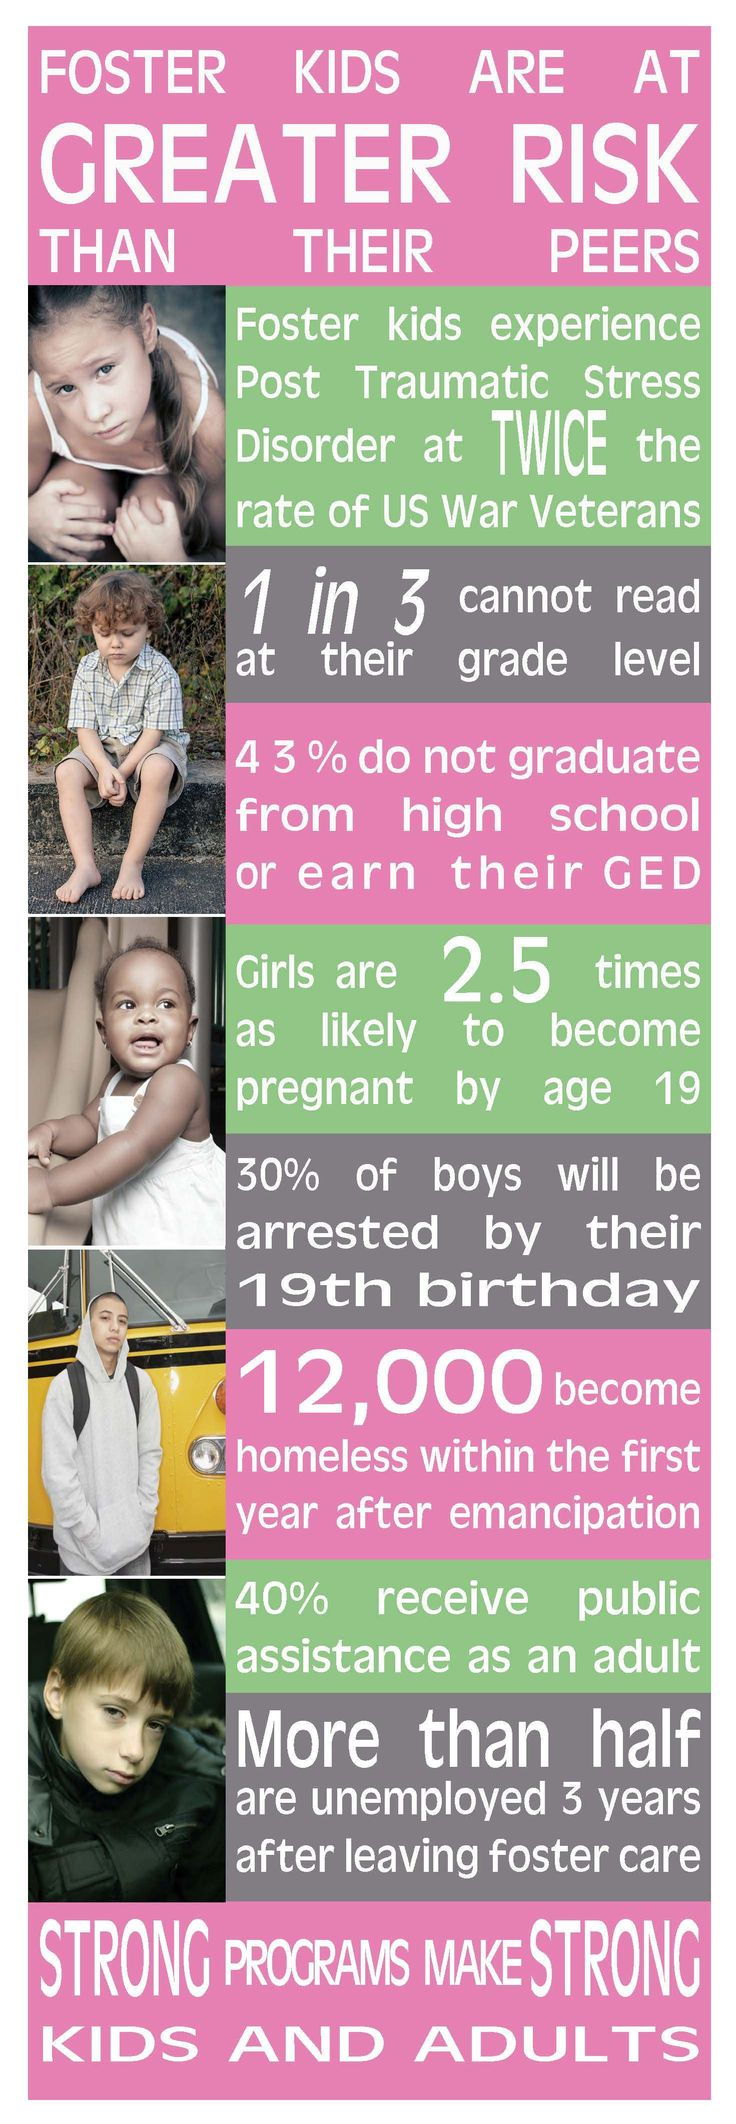 Risks of Foster Care - I can't let this continue! Every child I touch, that child's future can be brighter.